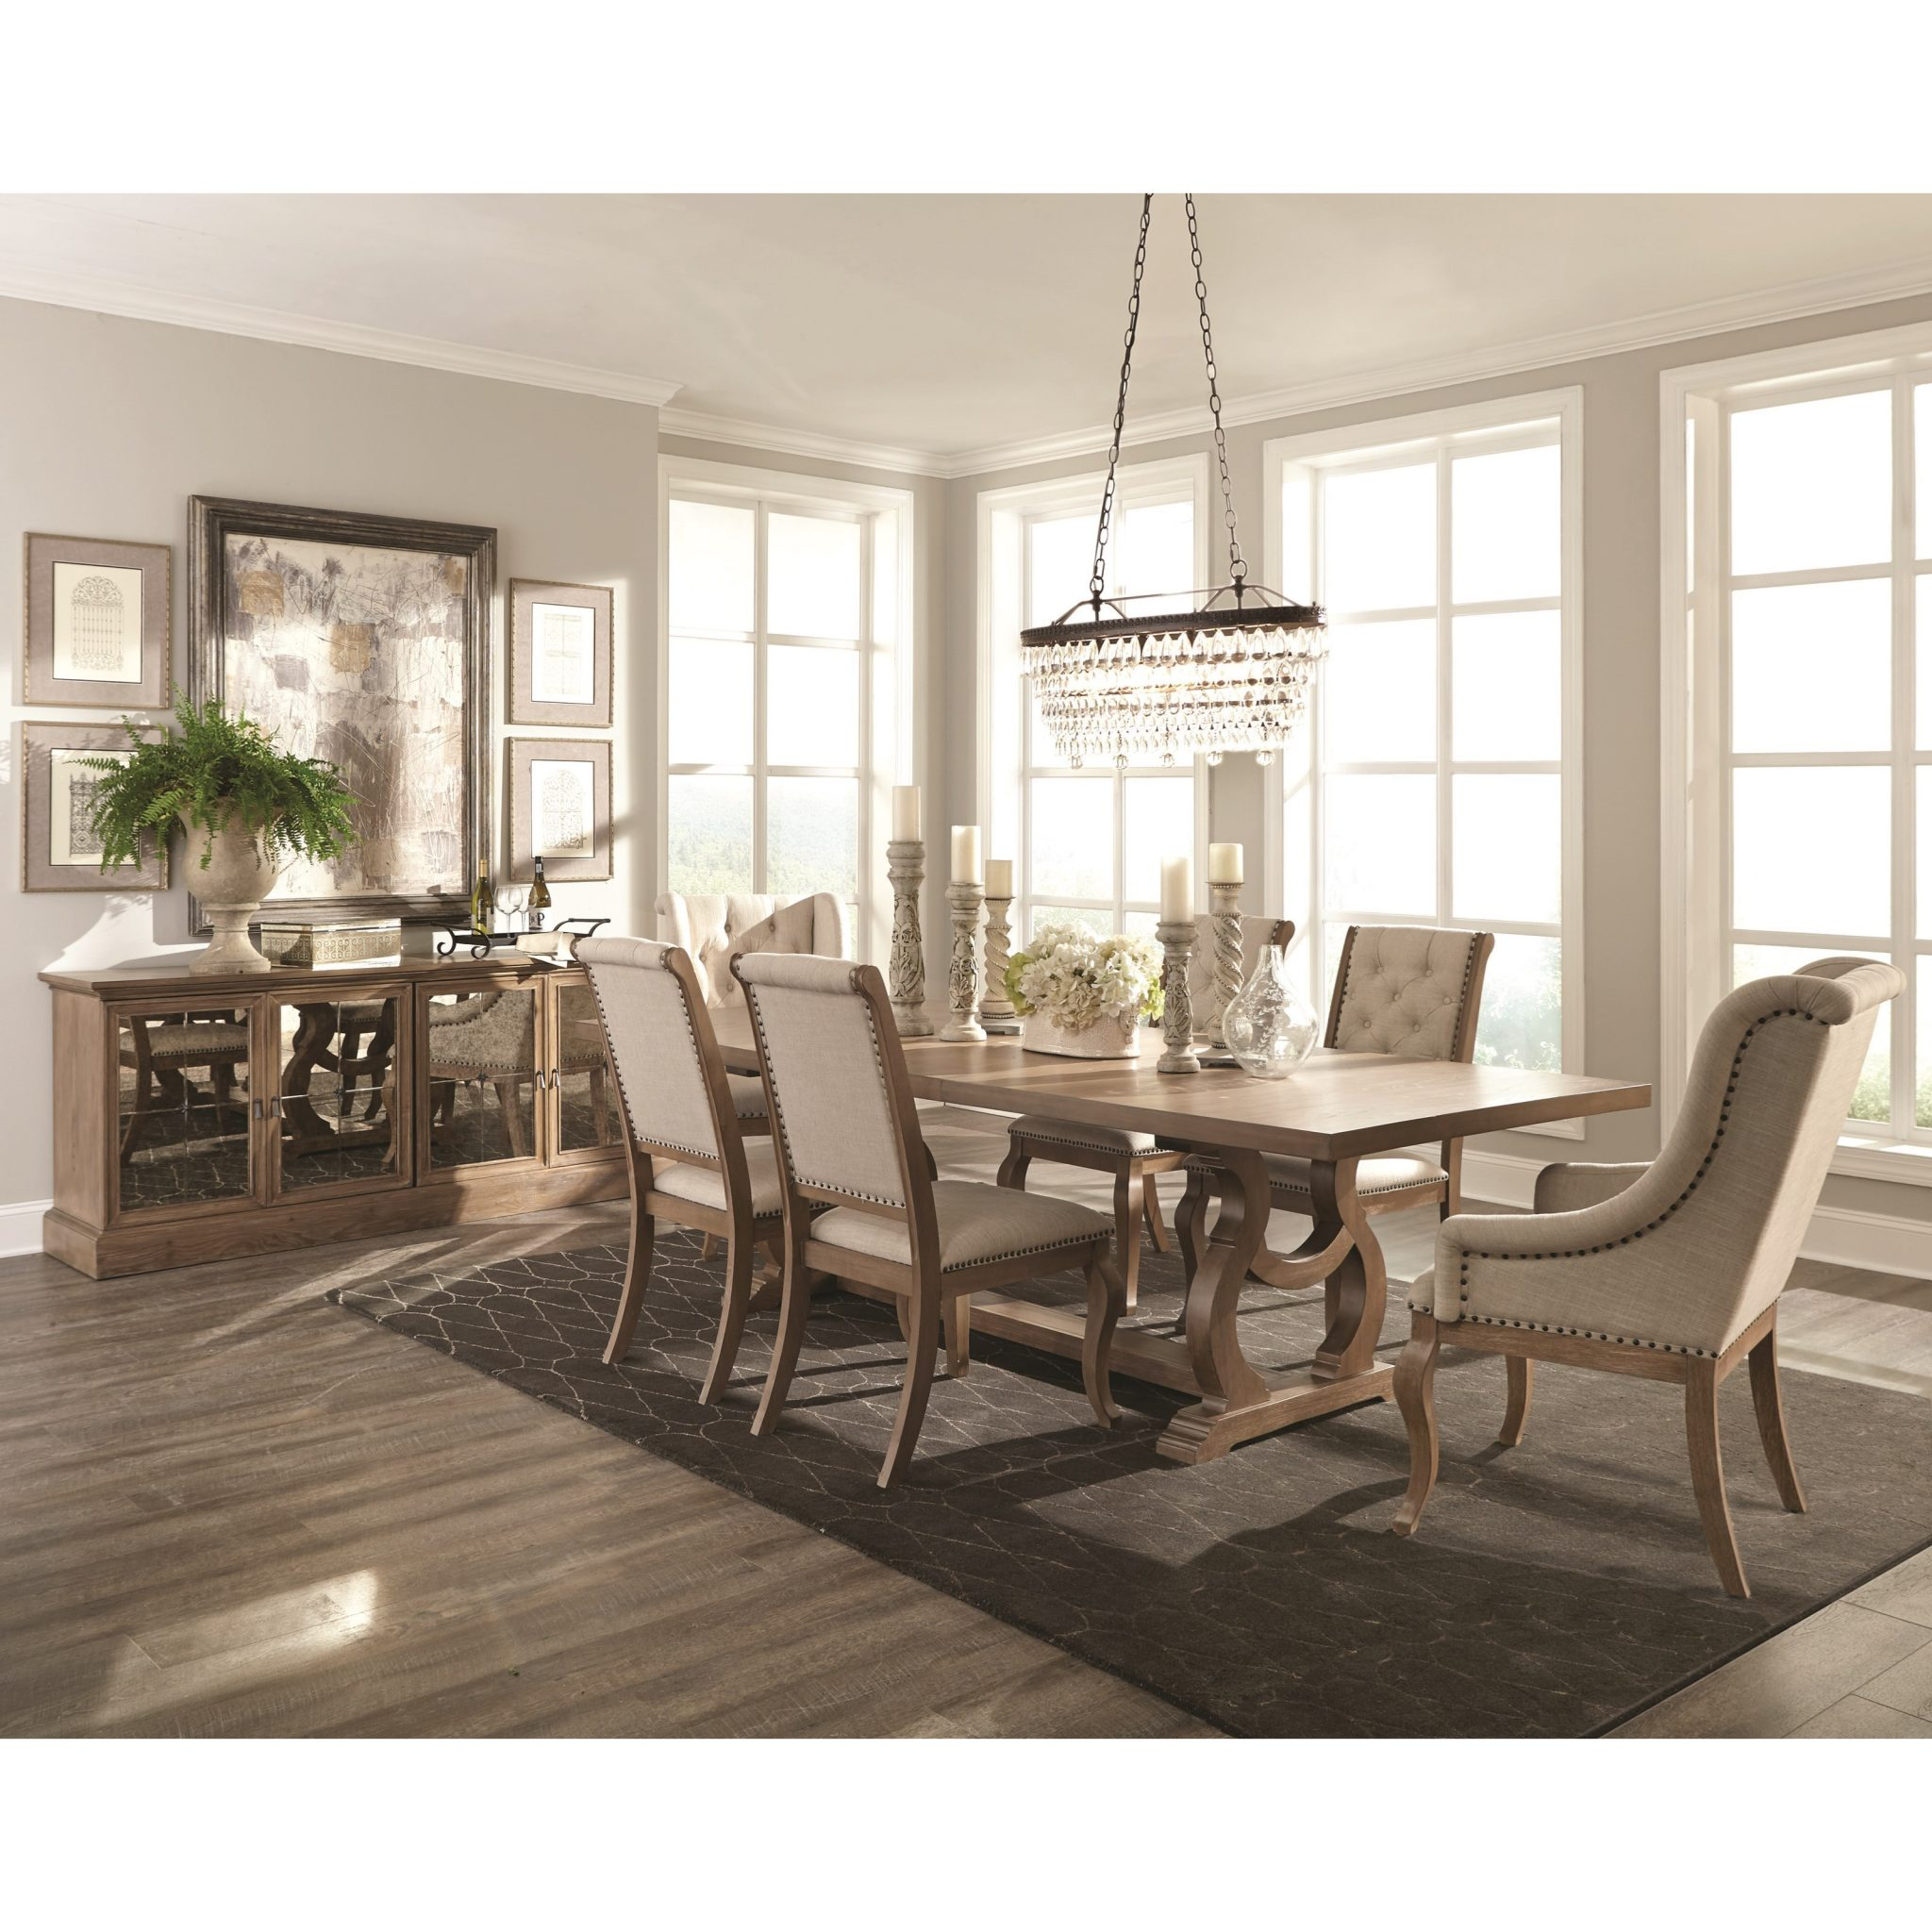 Glen cove set 5 pc by coaster furniture expo outlet for Dining room outlet reviews